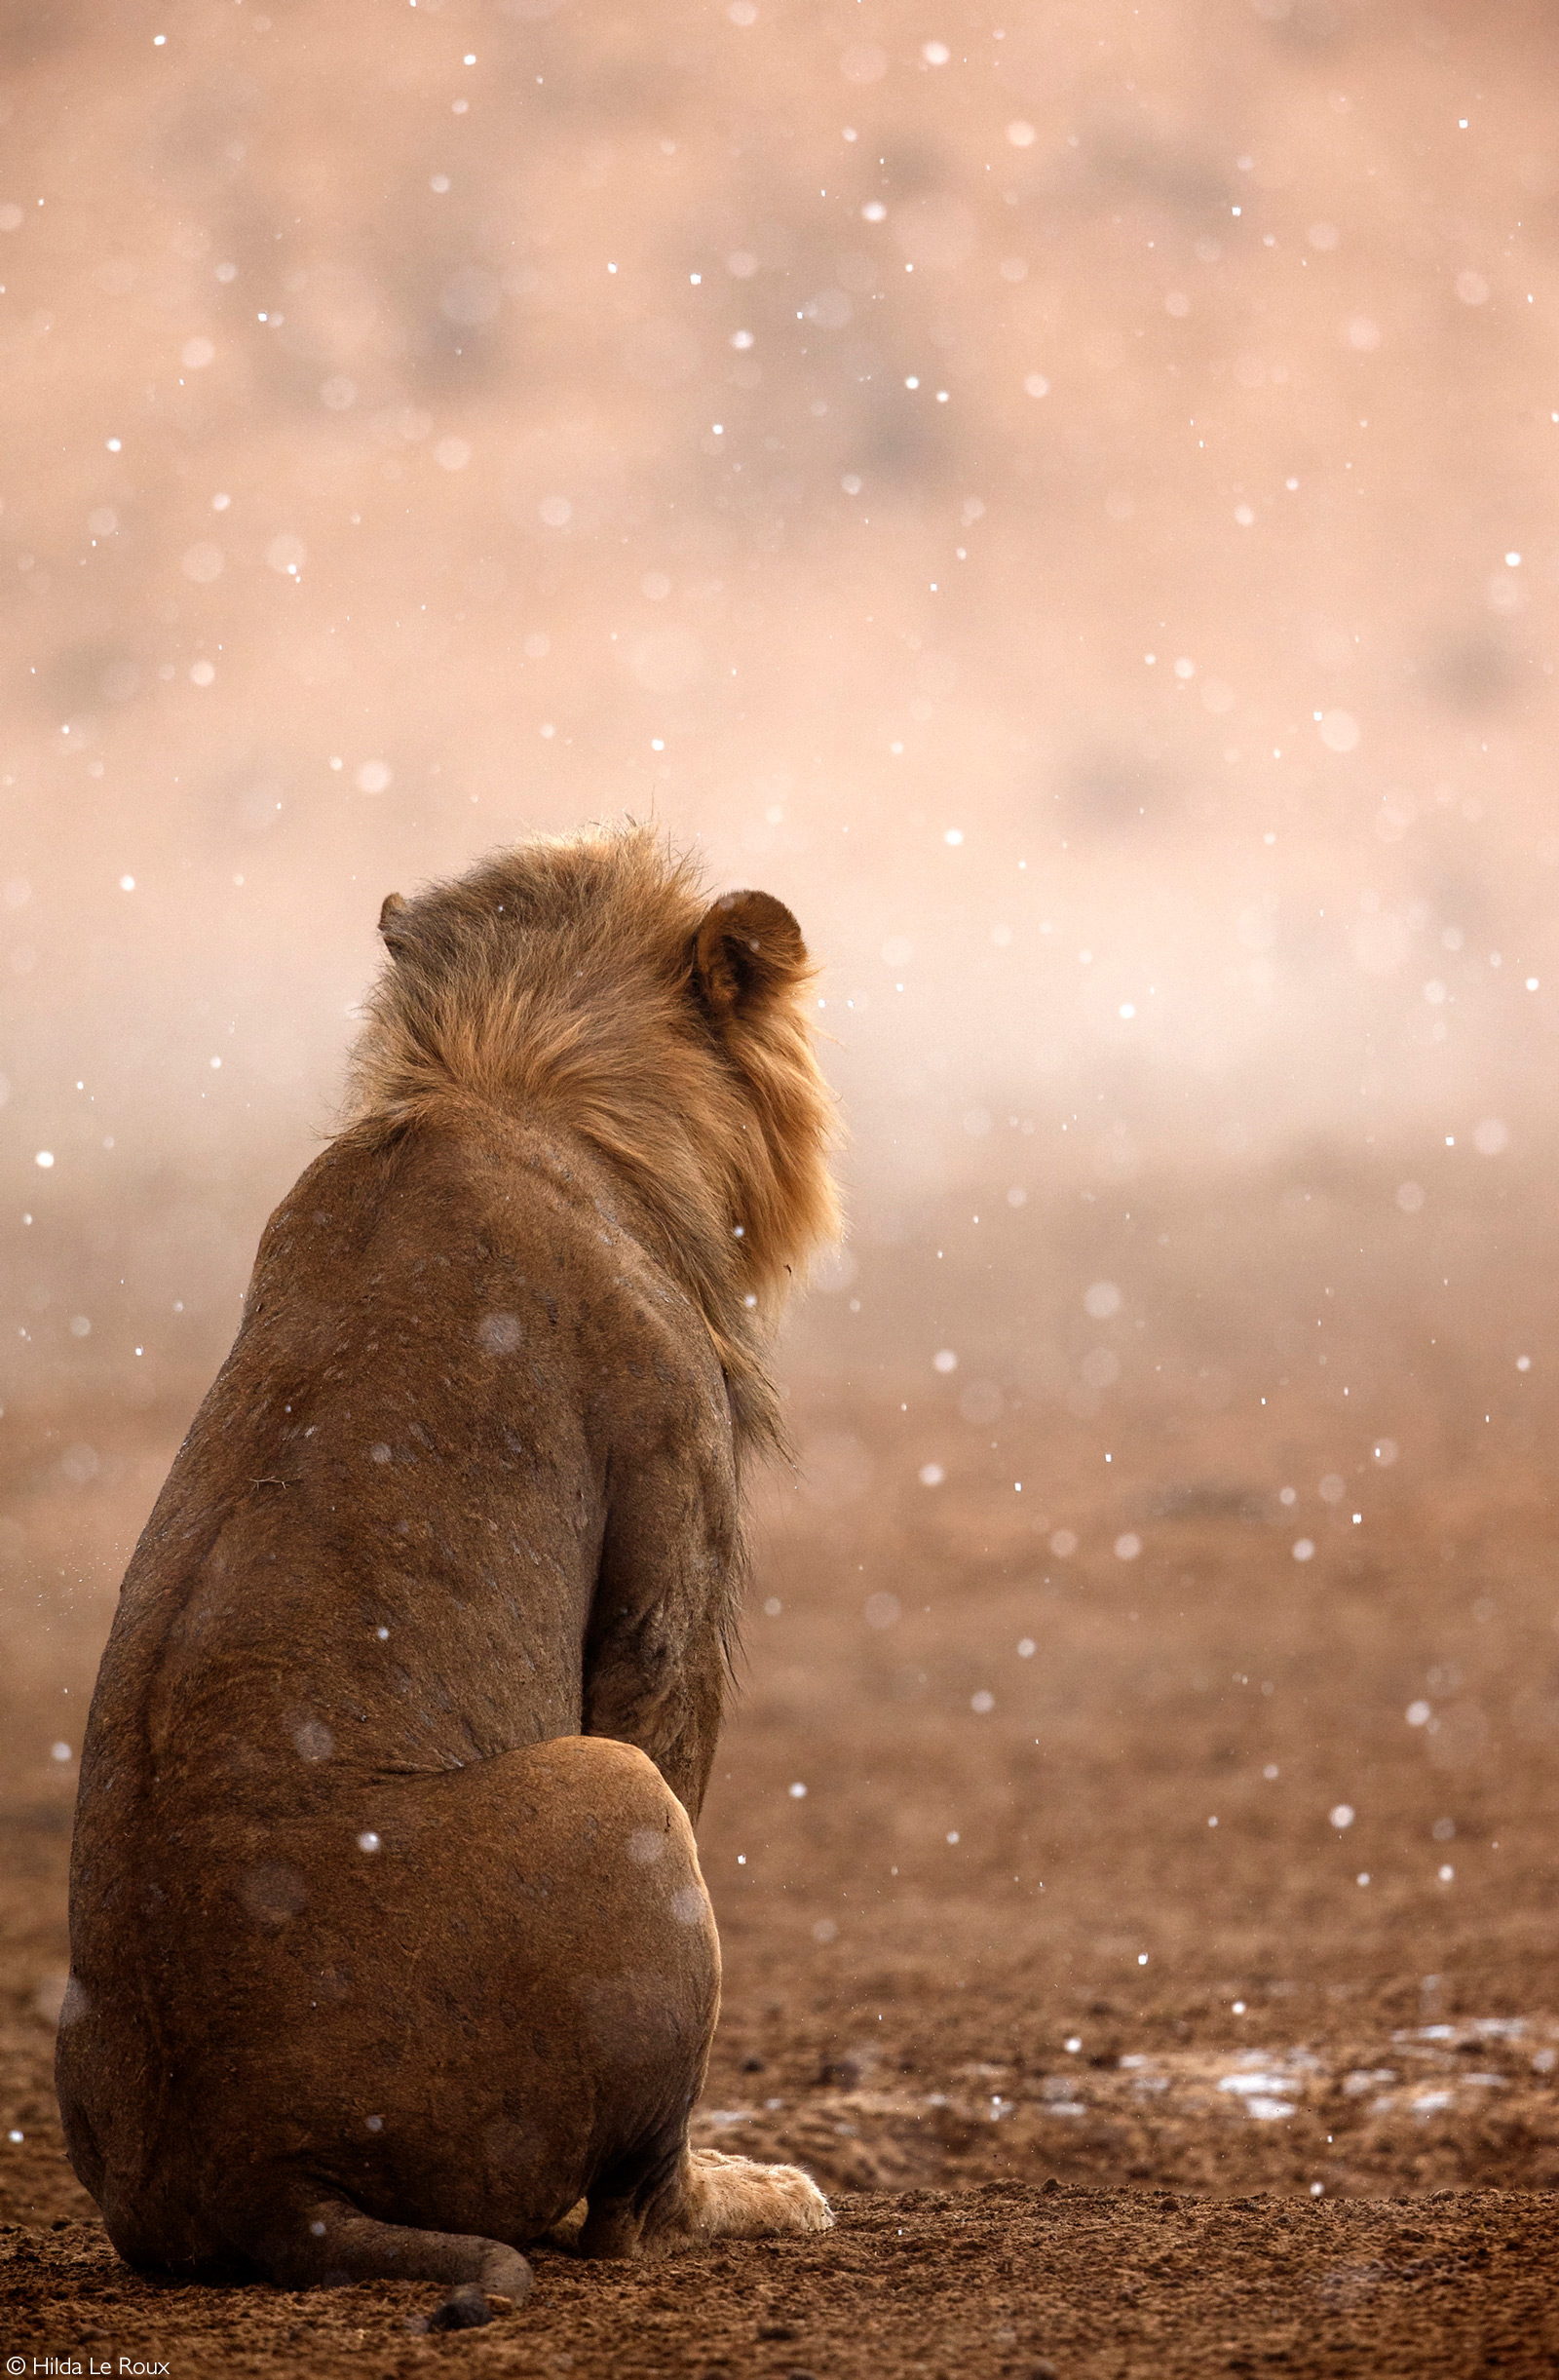 A lion sits in the rain. Kgalagadi Transfrontier Park, South Africa © Hilda Le Roux